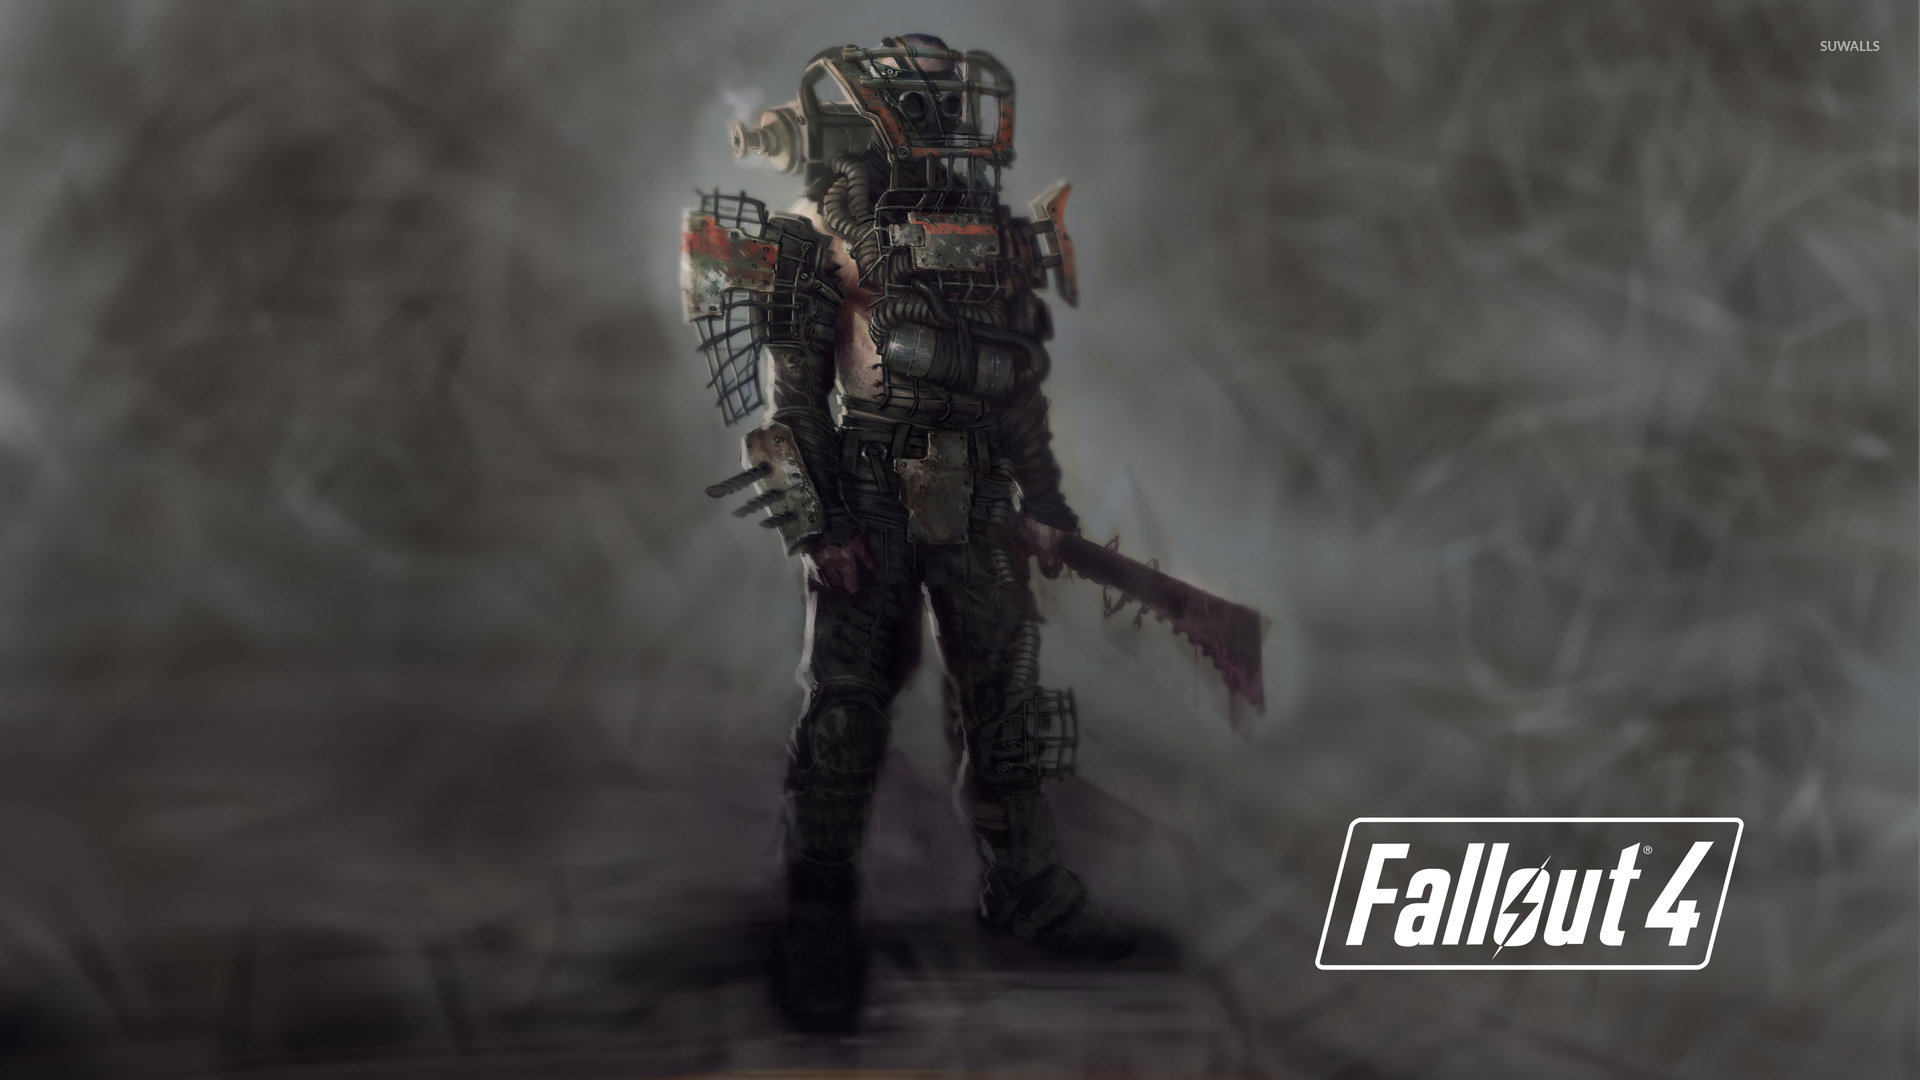 Fall Out Boy Wallpaper Pc Raider In Fallout 4 Wallpaper Game Wallpapers 50130